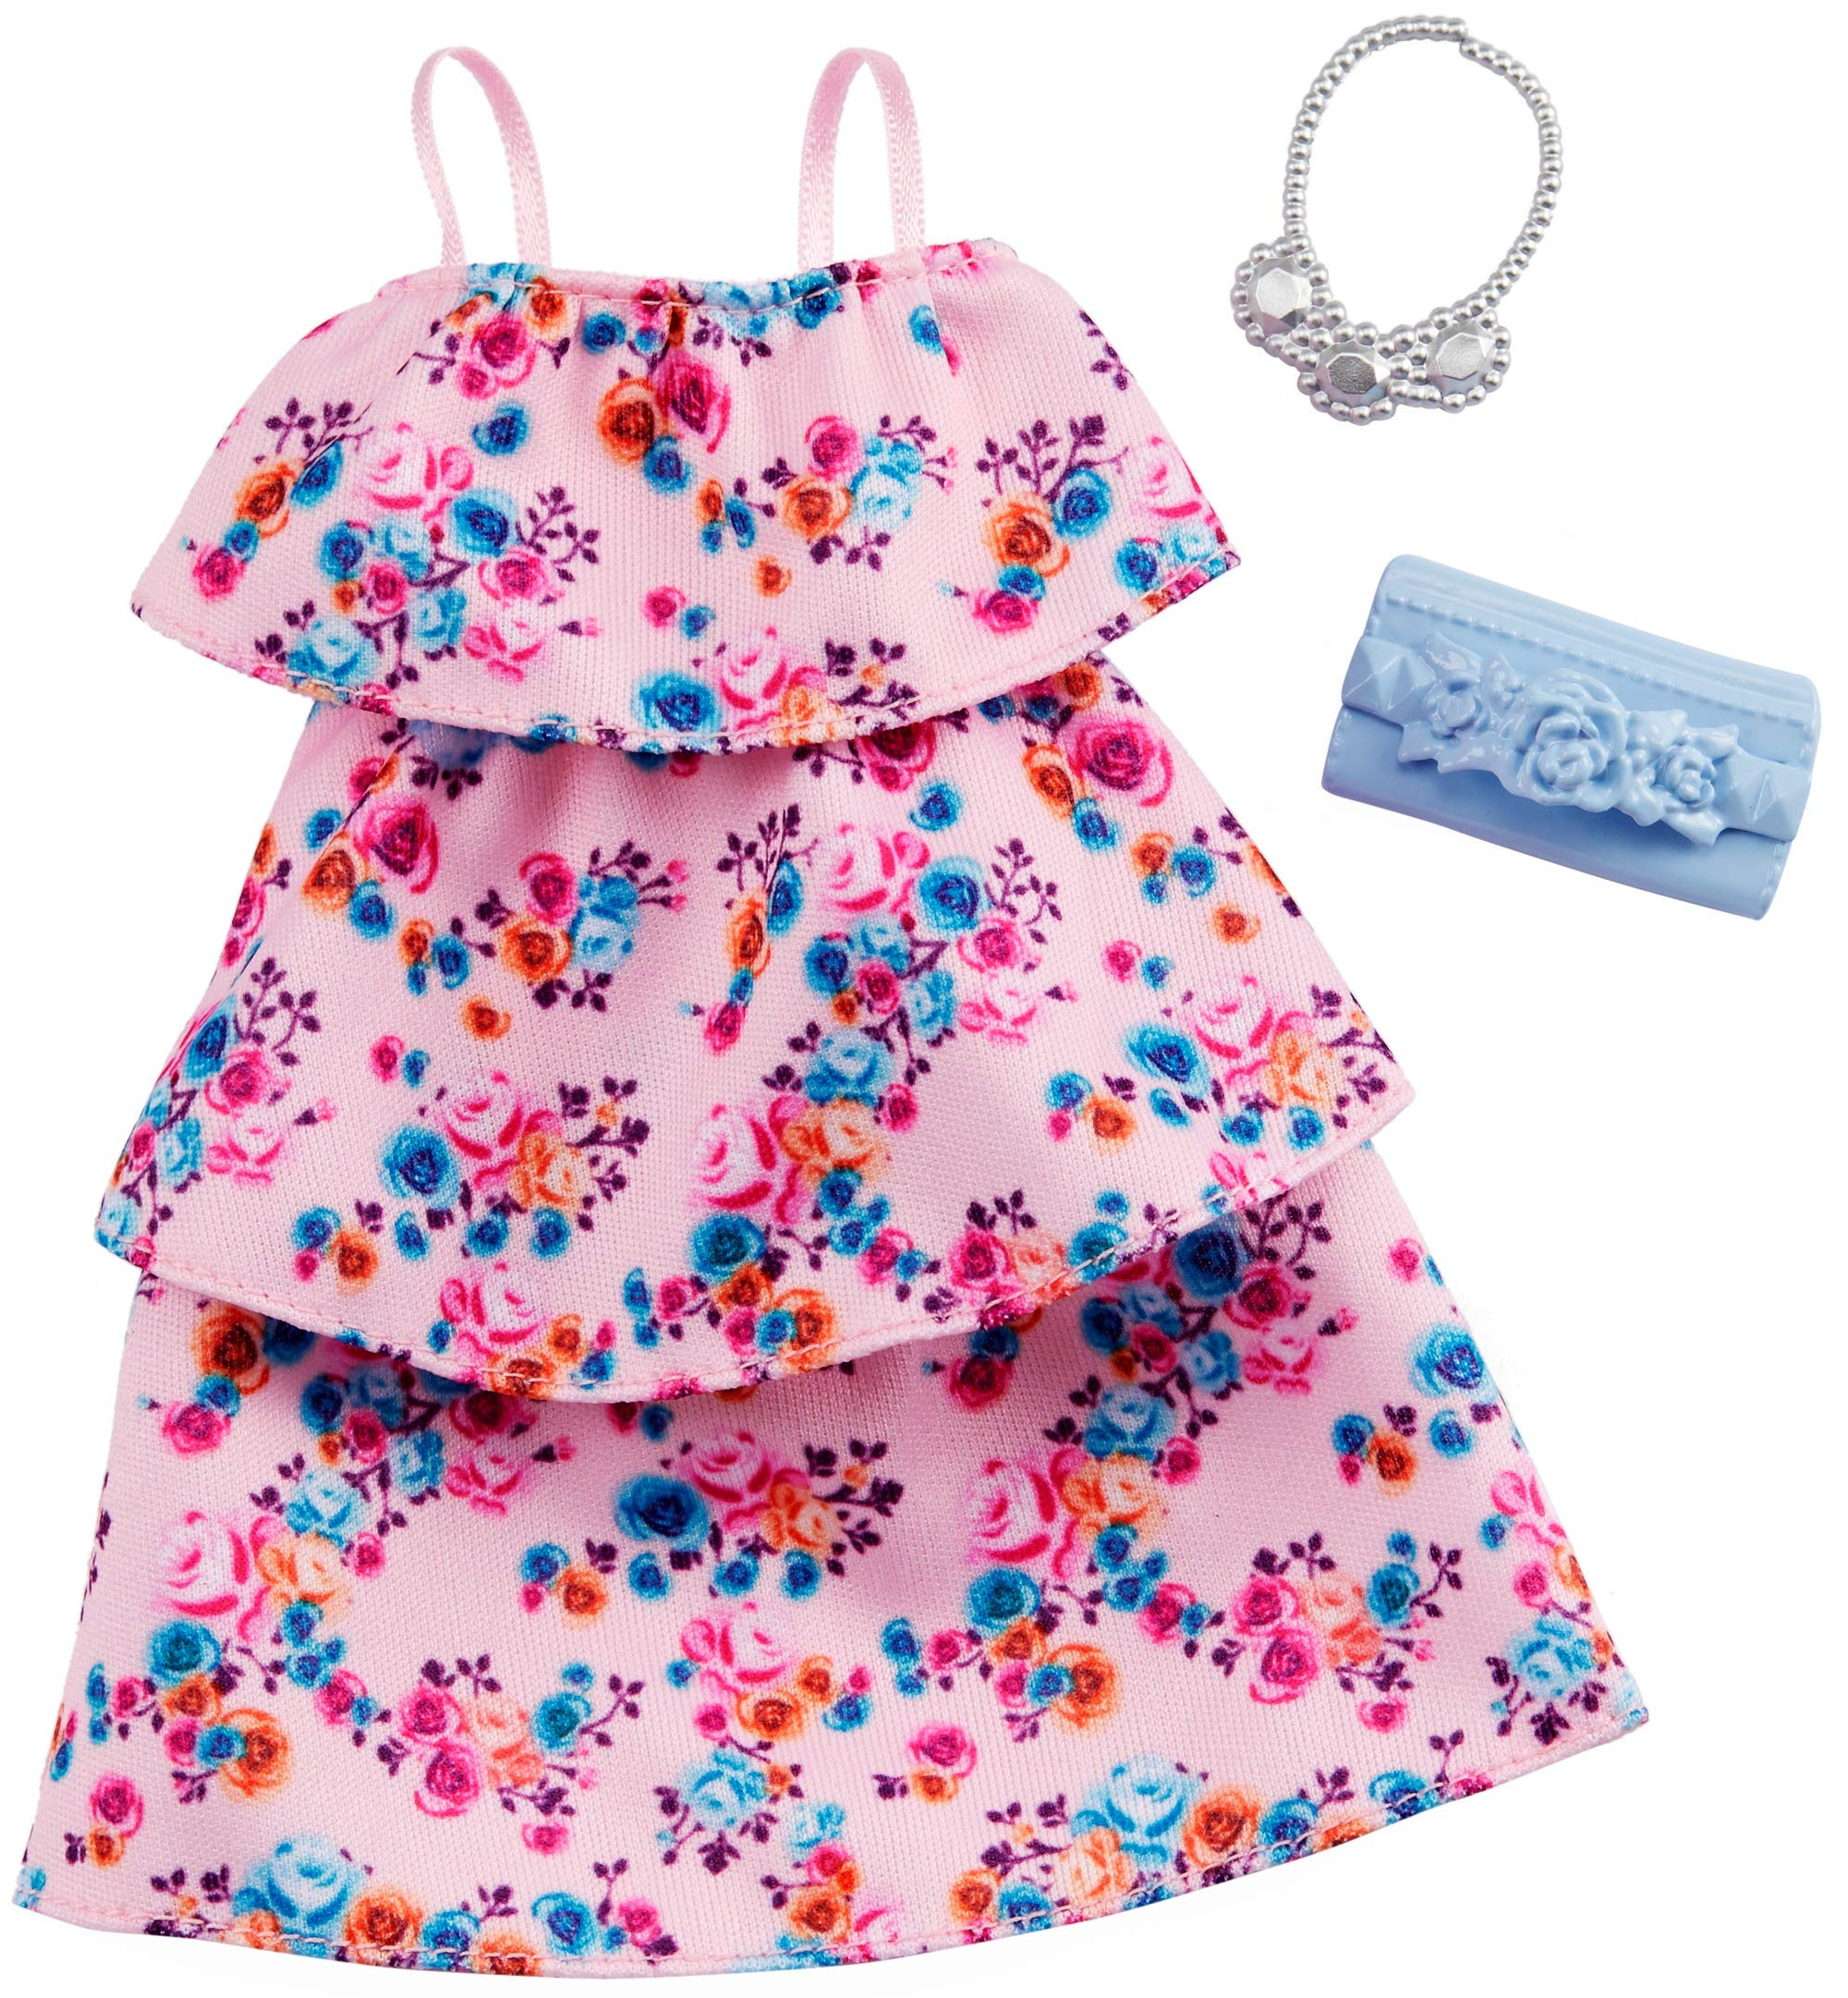 Barbie Clothes: 1 Outfit and 2 Accessories Dolls 5 Multicolor GHW78